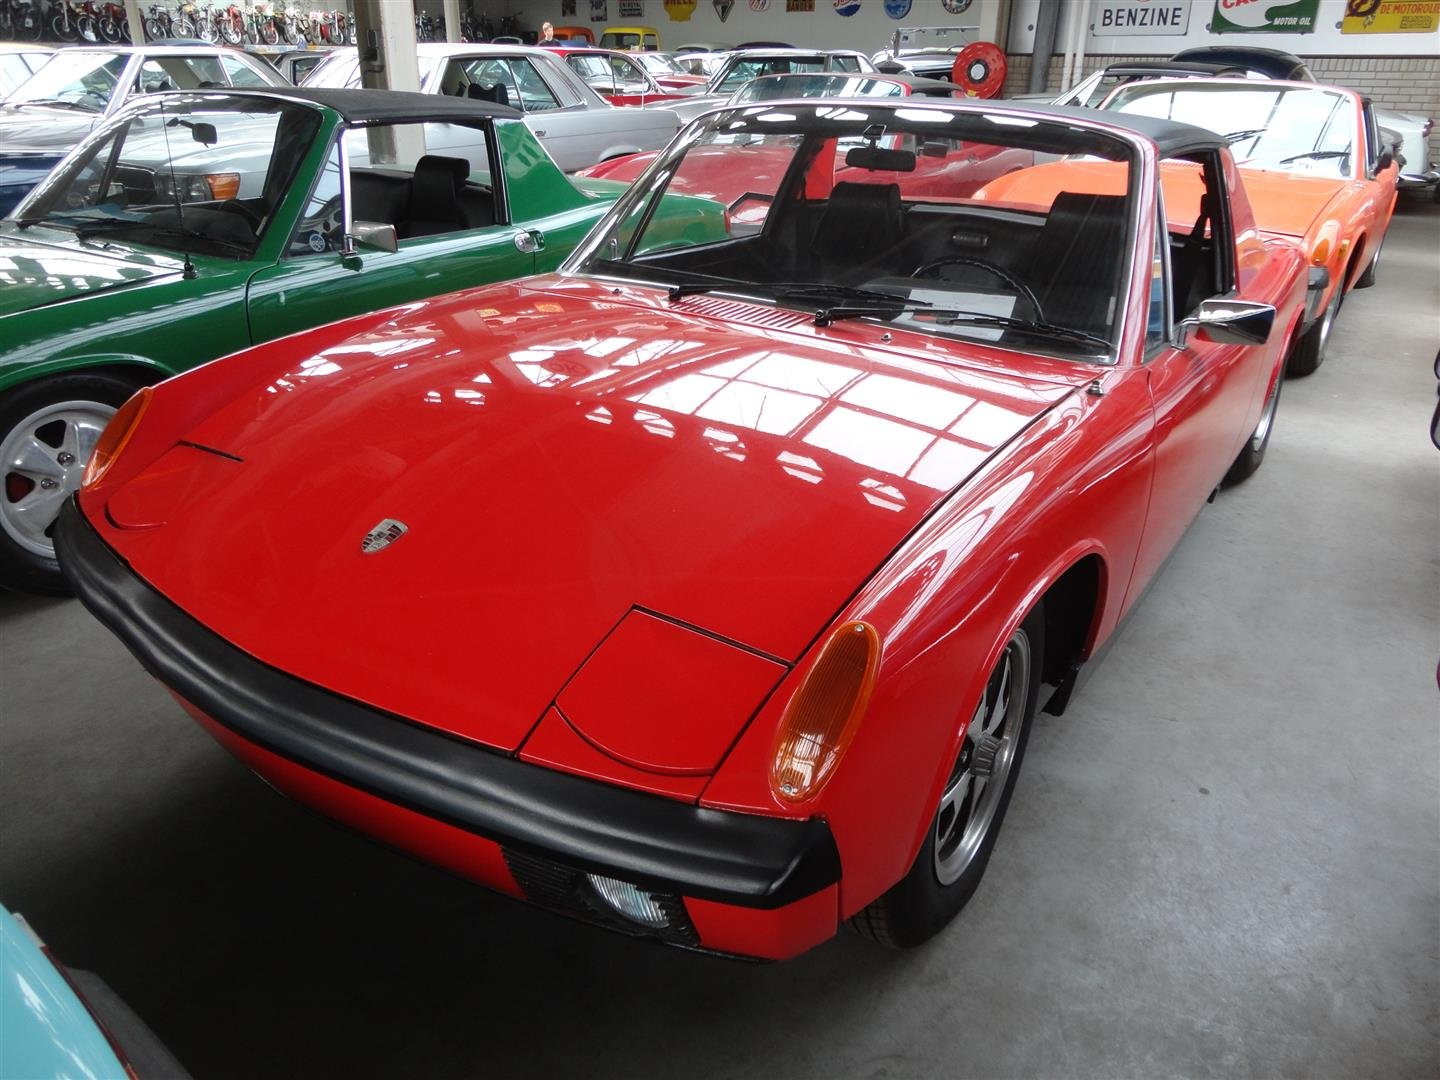 1972 Porsche 914 1.7 ltr. '72 For Sale (picture 2 of 6)